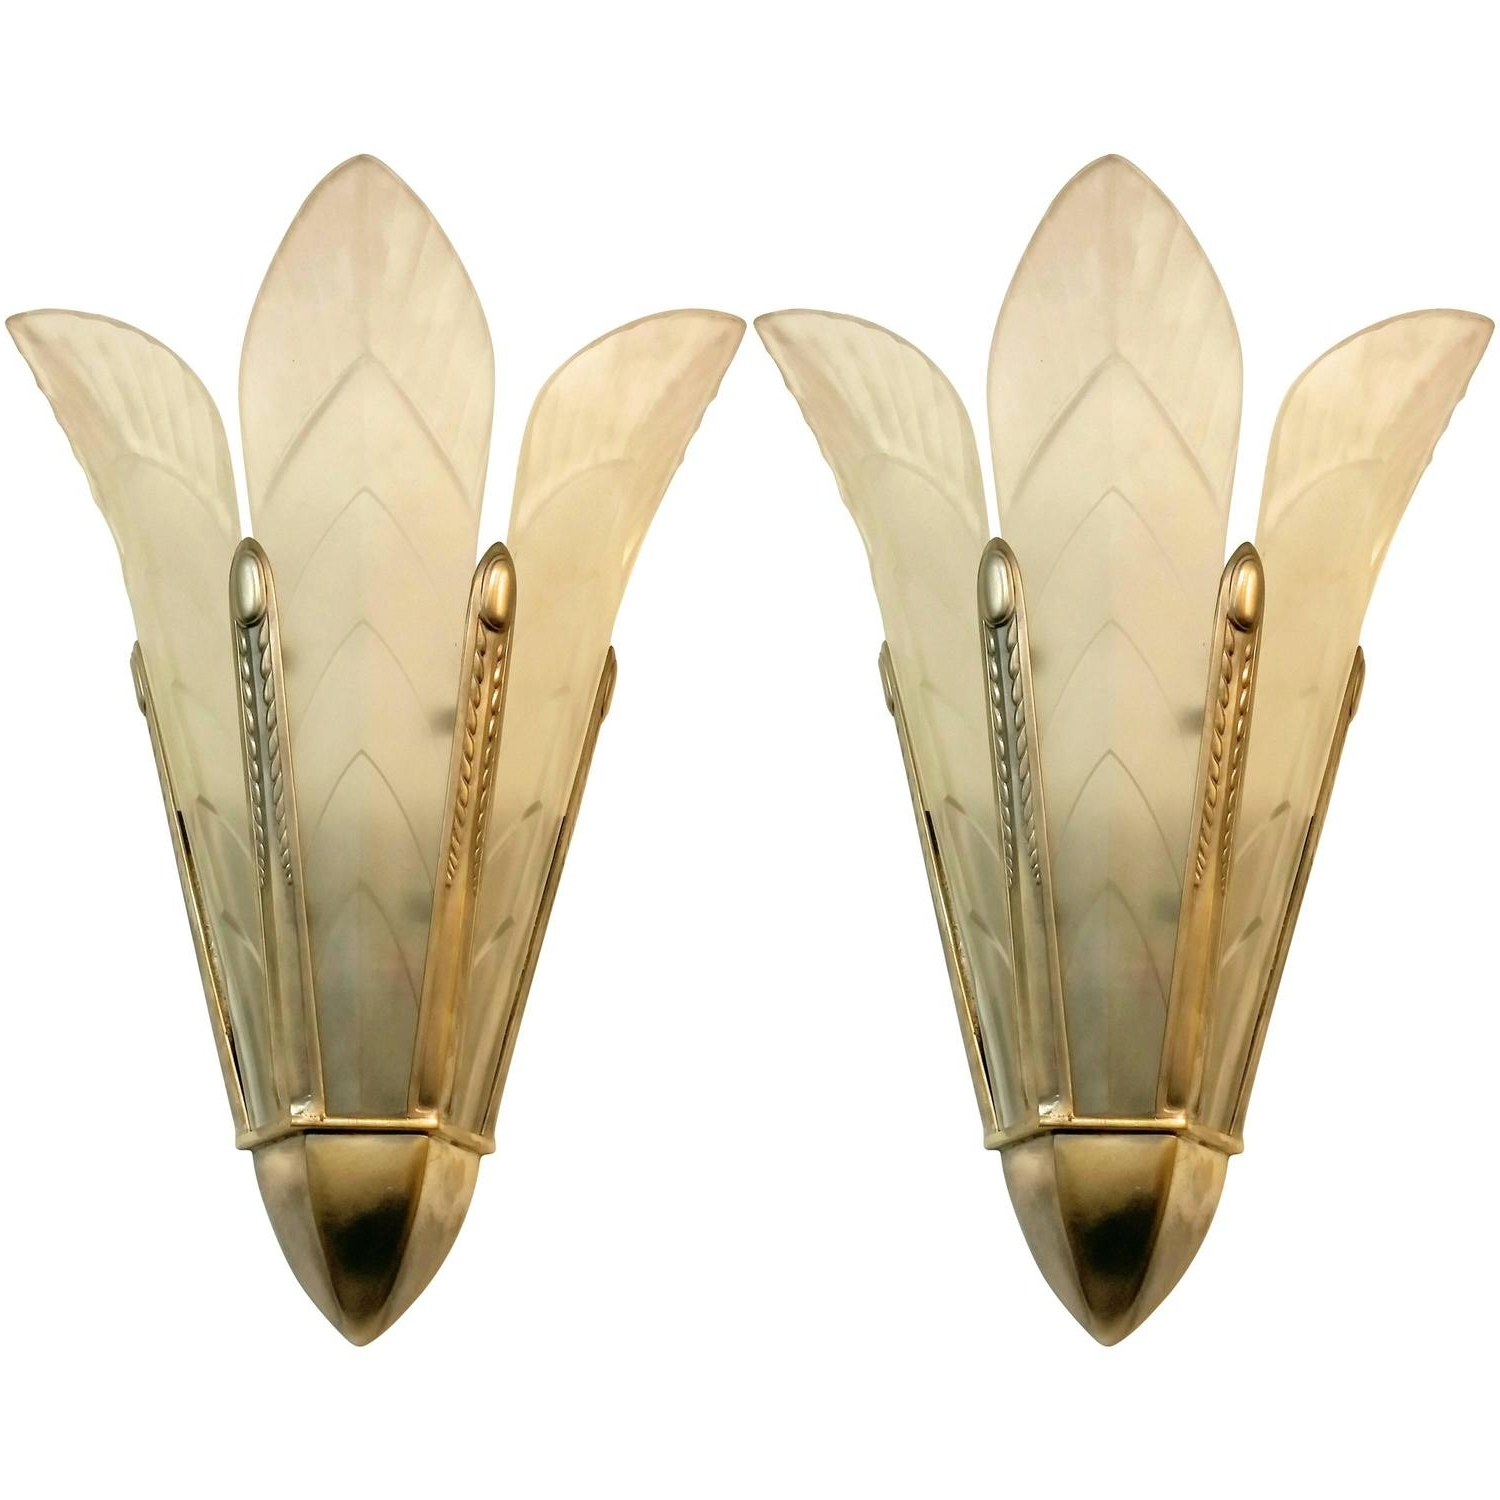 Well Known French Art Deco Wall Sconcessabino For Sale At 1Stdibs Throughout Art Deco Wall Sconces (Gallery 5 of 20)